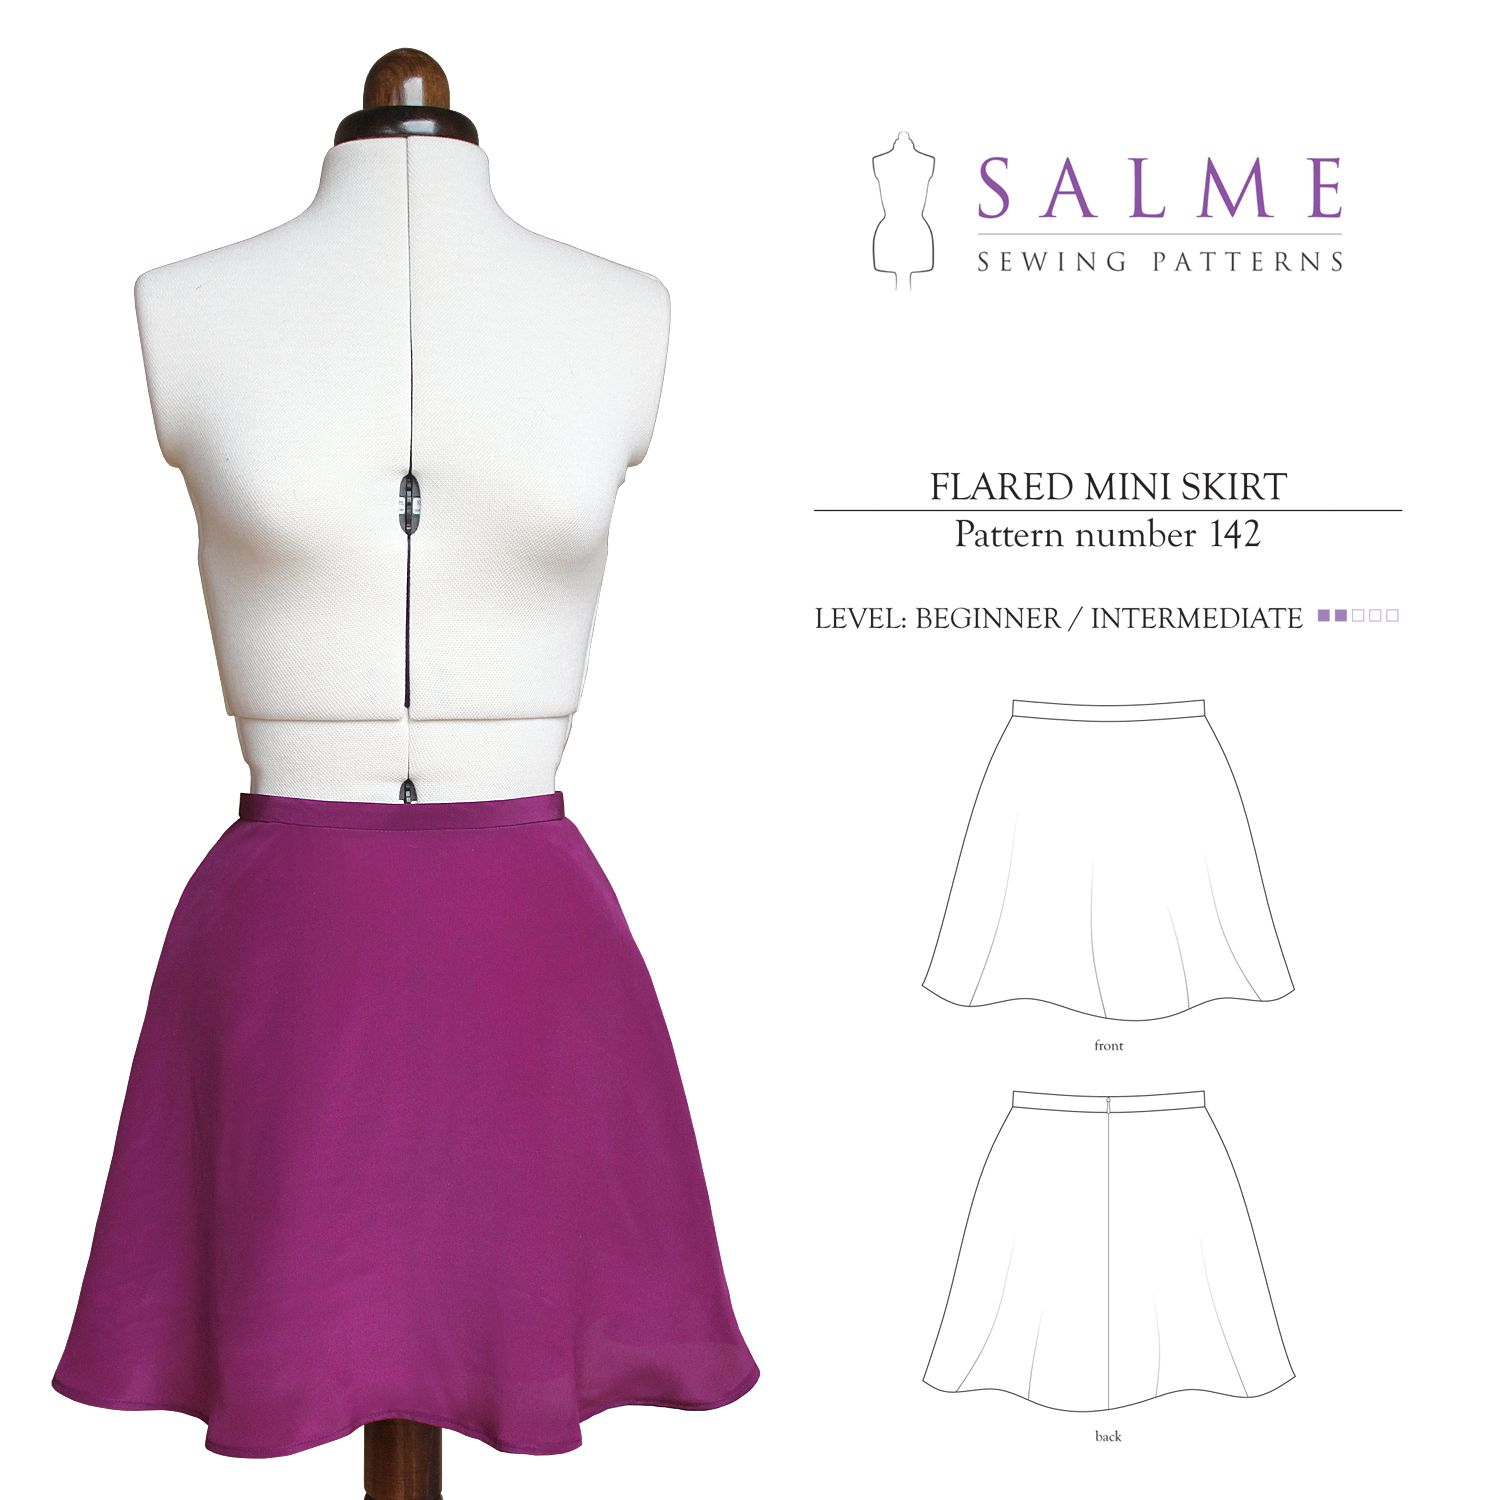 Salme Sewing Patterns 142 Flared Mini Skirt Downloadable Pattern ...